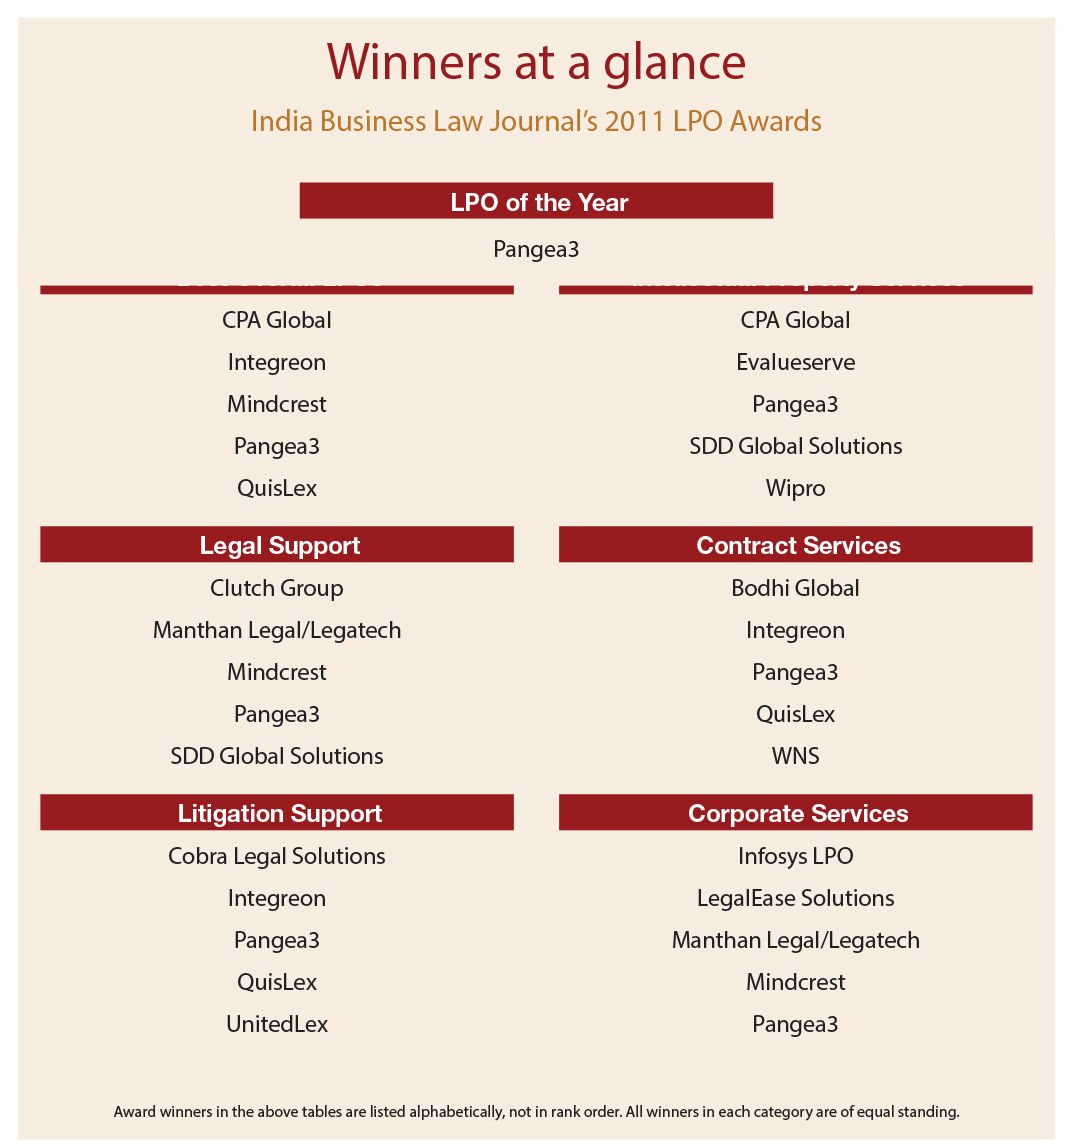 Winners at a glance - India Business Law Journal's 2011 LPO Awards